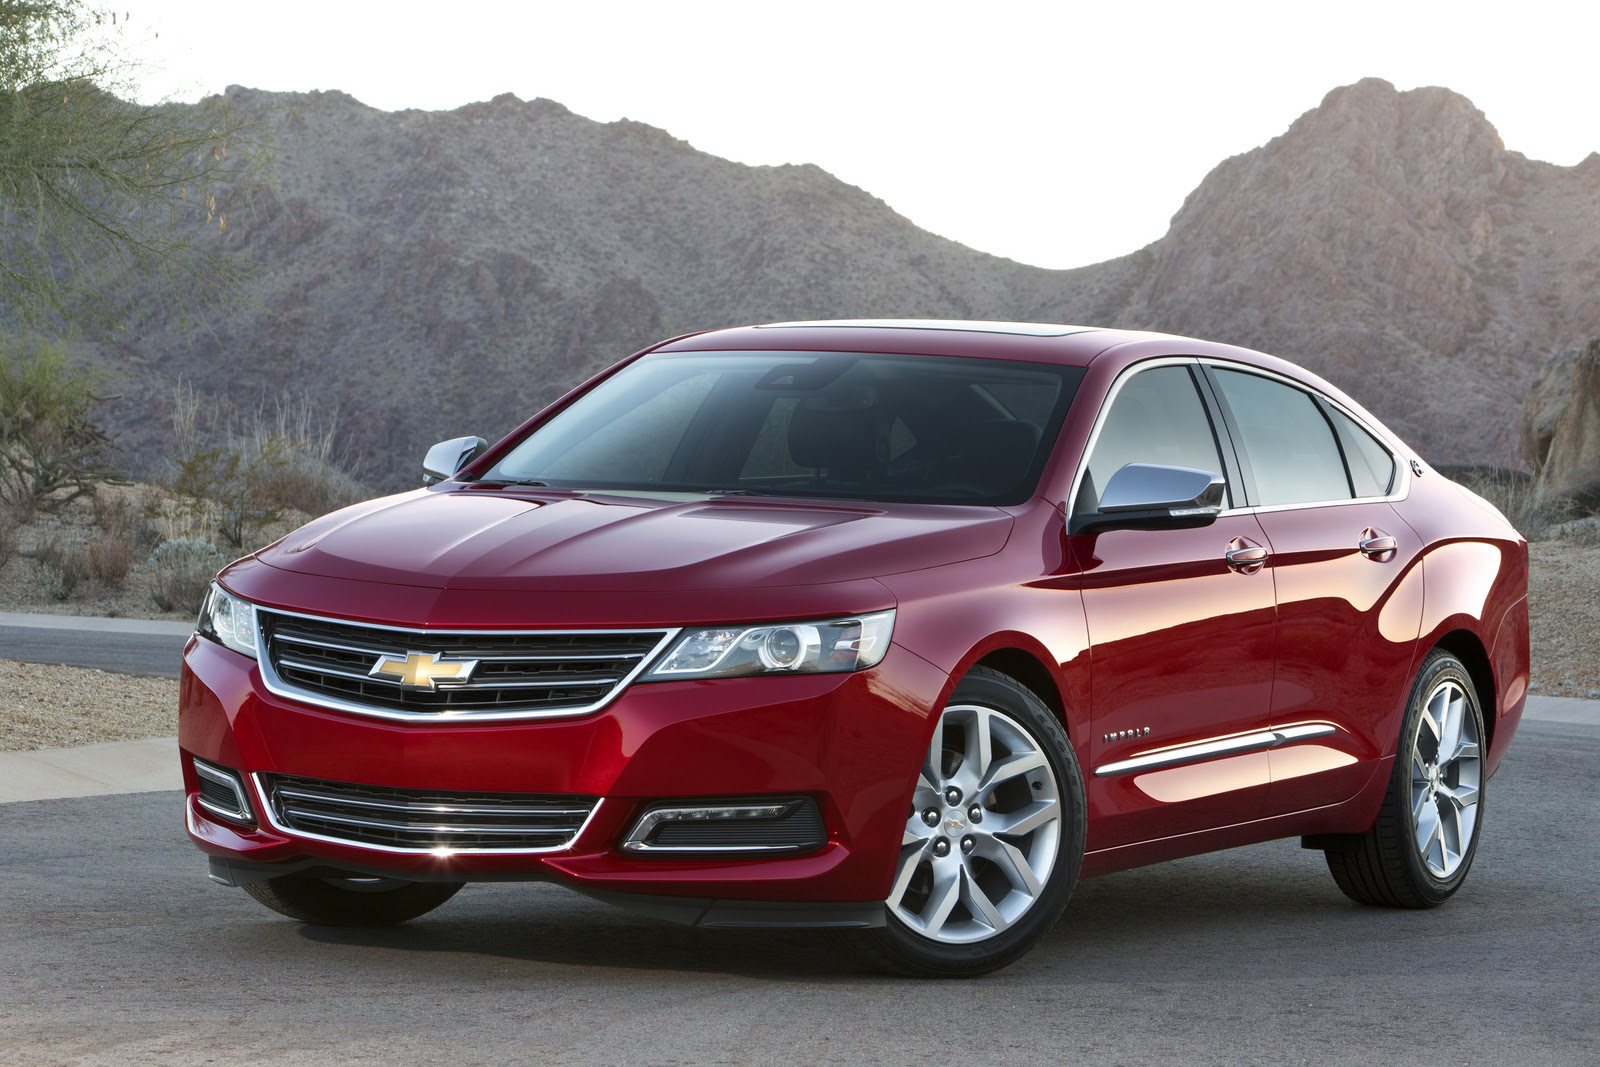 2014 Chevrolet Impala - Test Drive Review - CarGurus